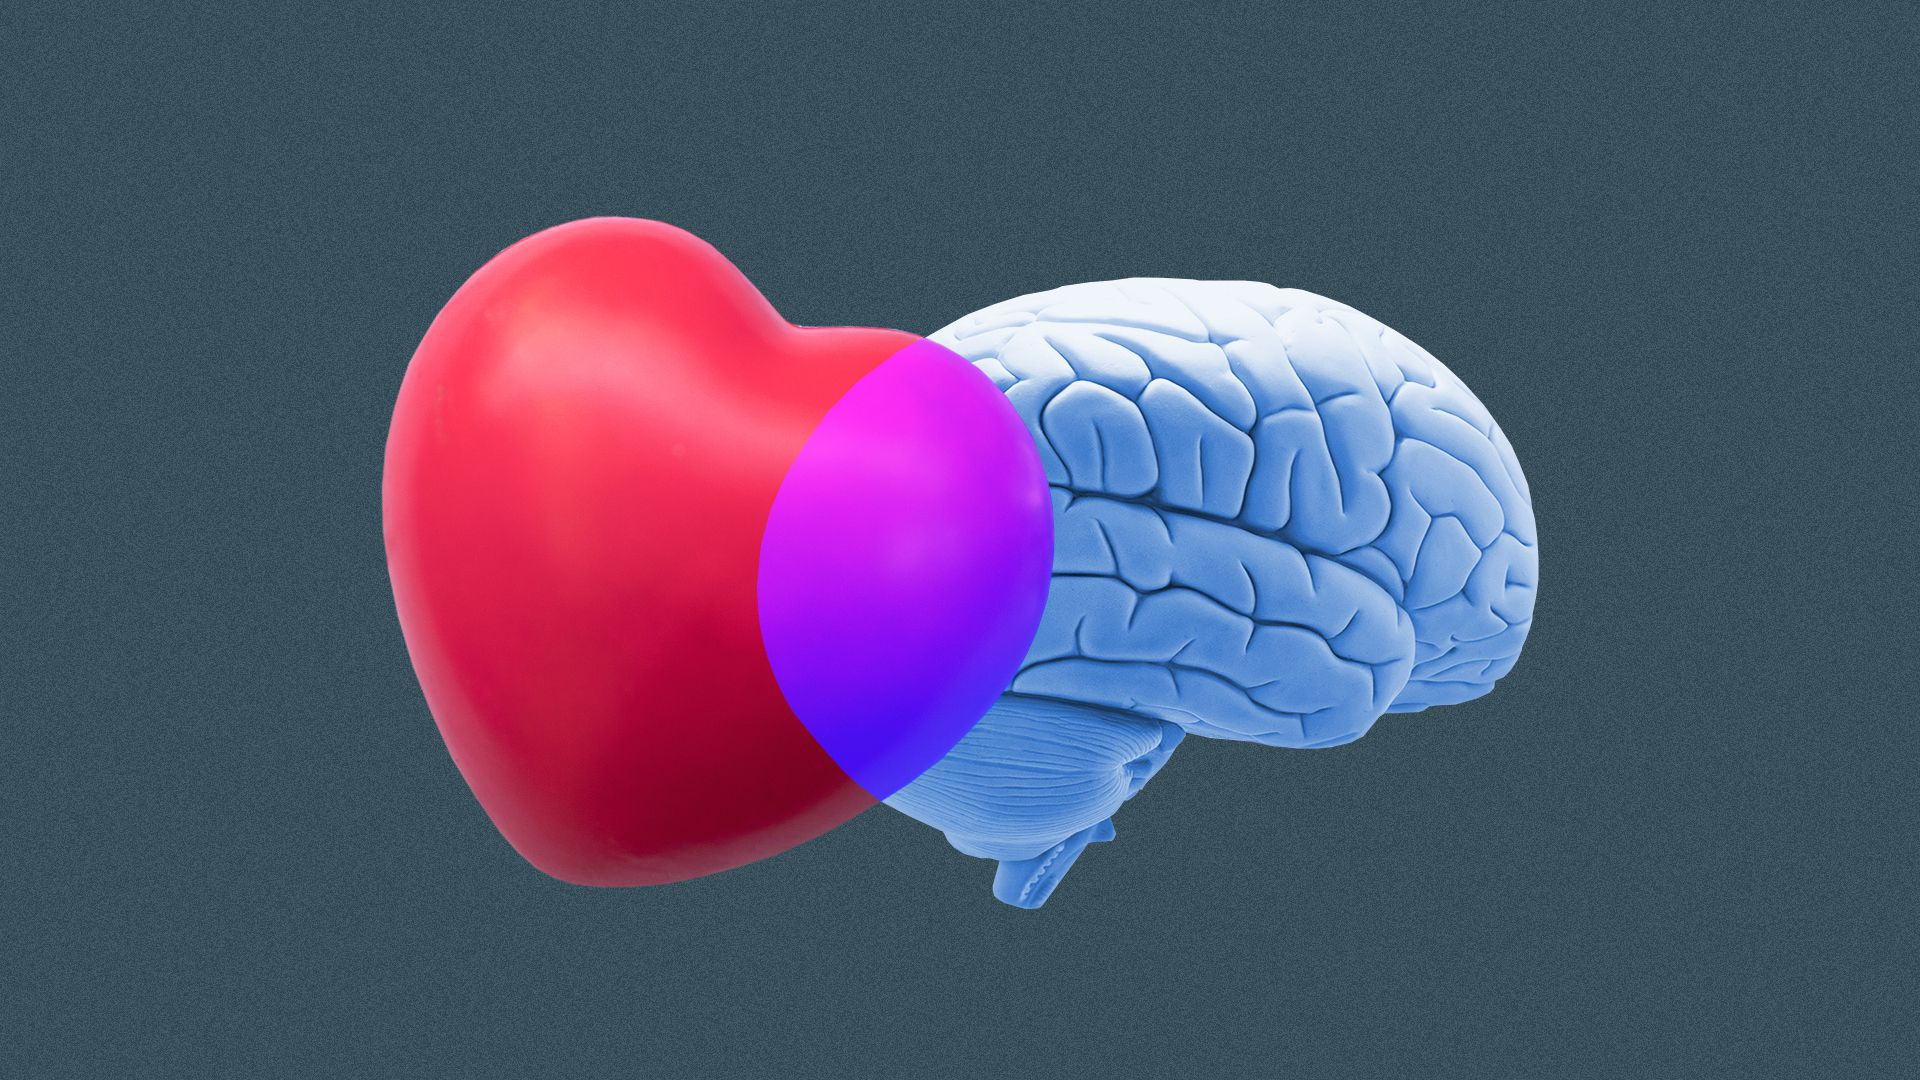 Illustration of a heart and brain overlapping to create a venn diagram